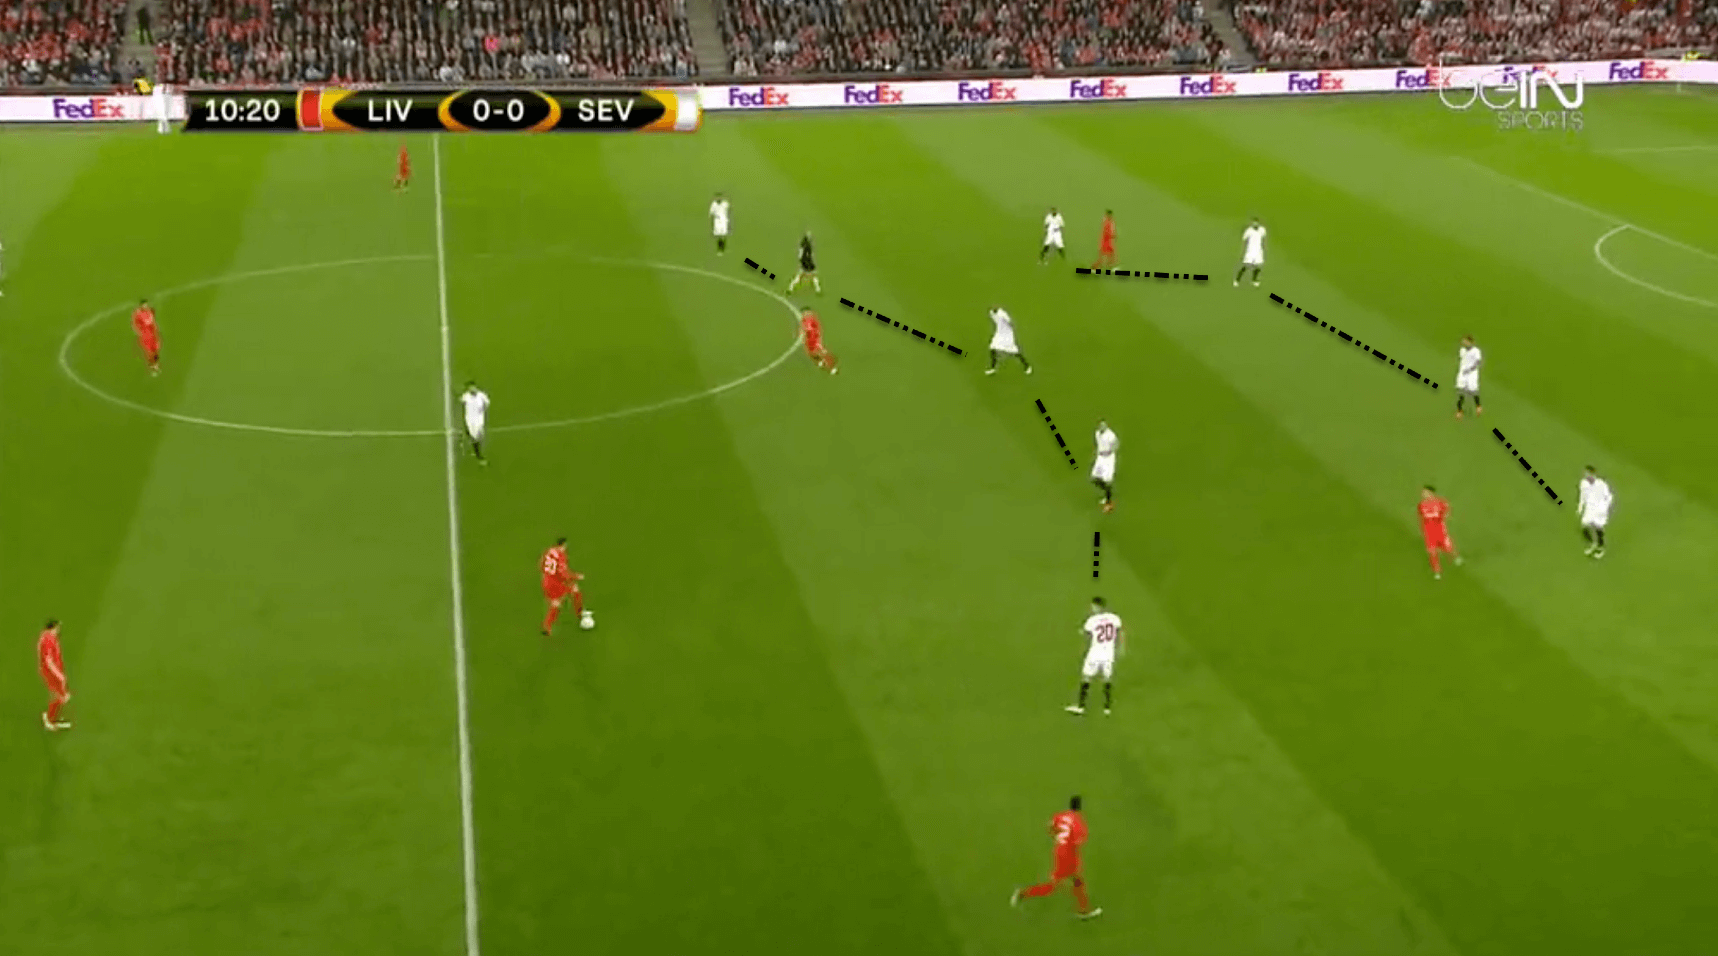 UEFA Europa League 2015/16: Liverpool vs Sevilla - tactical analysis tactics